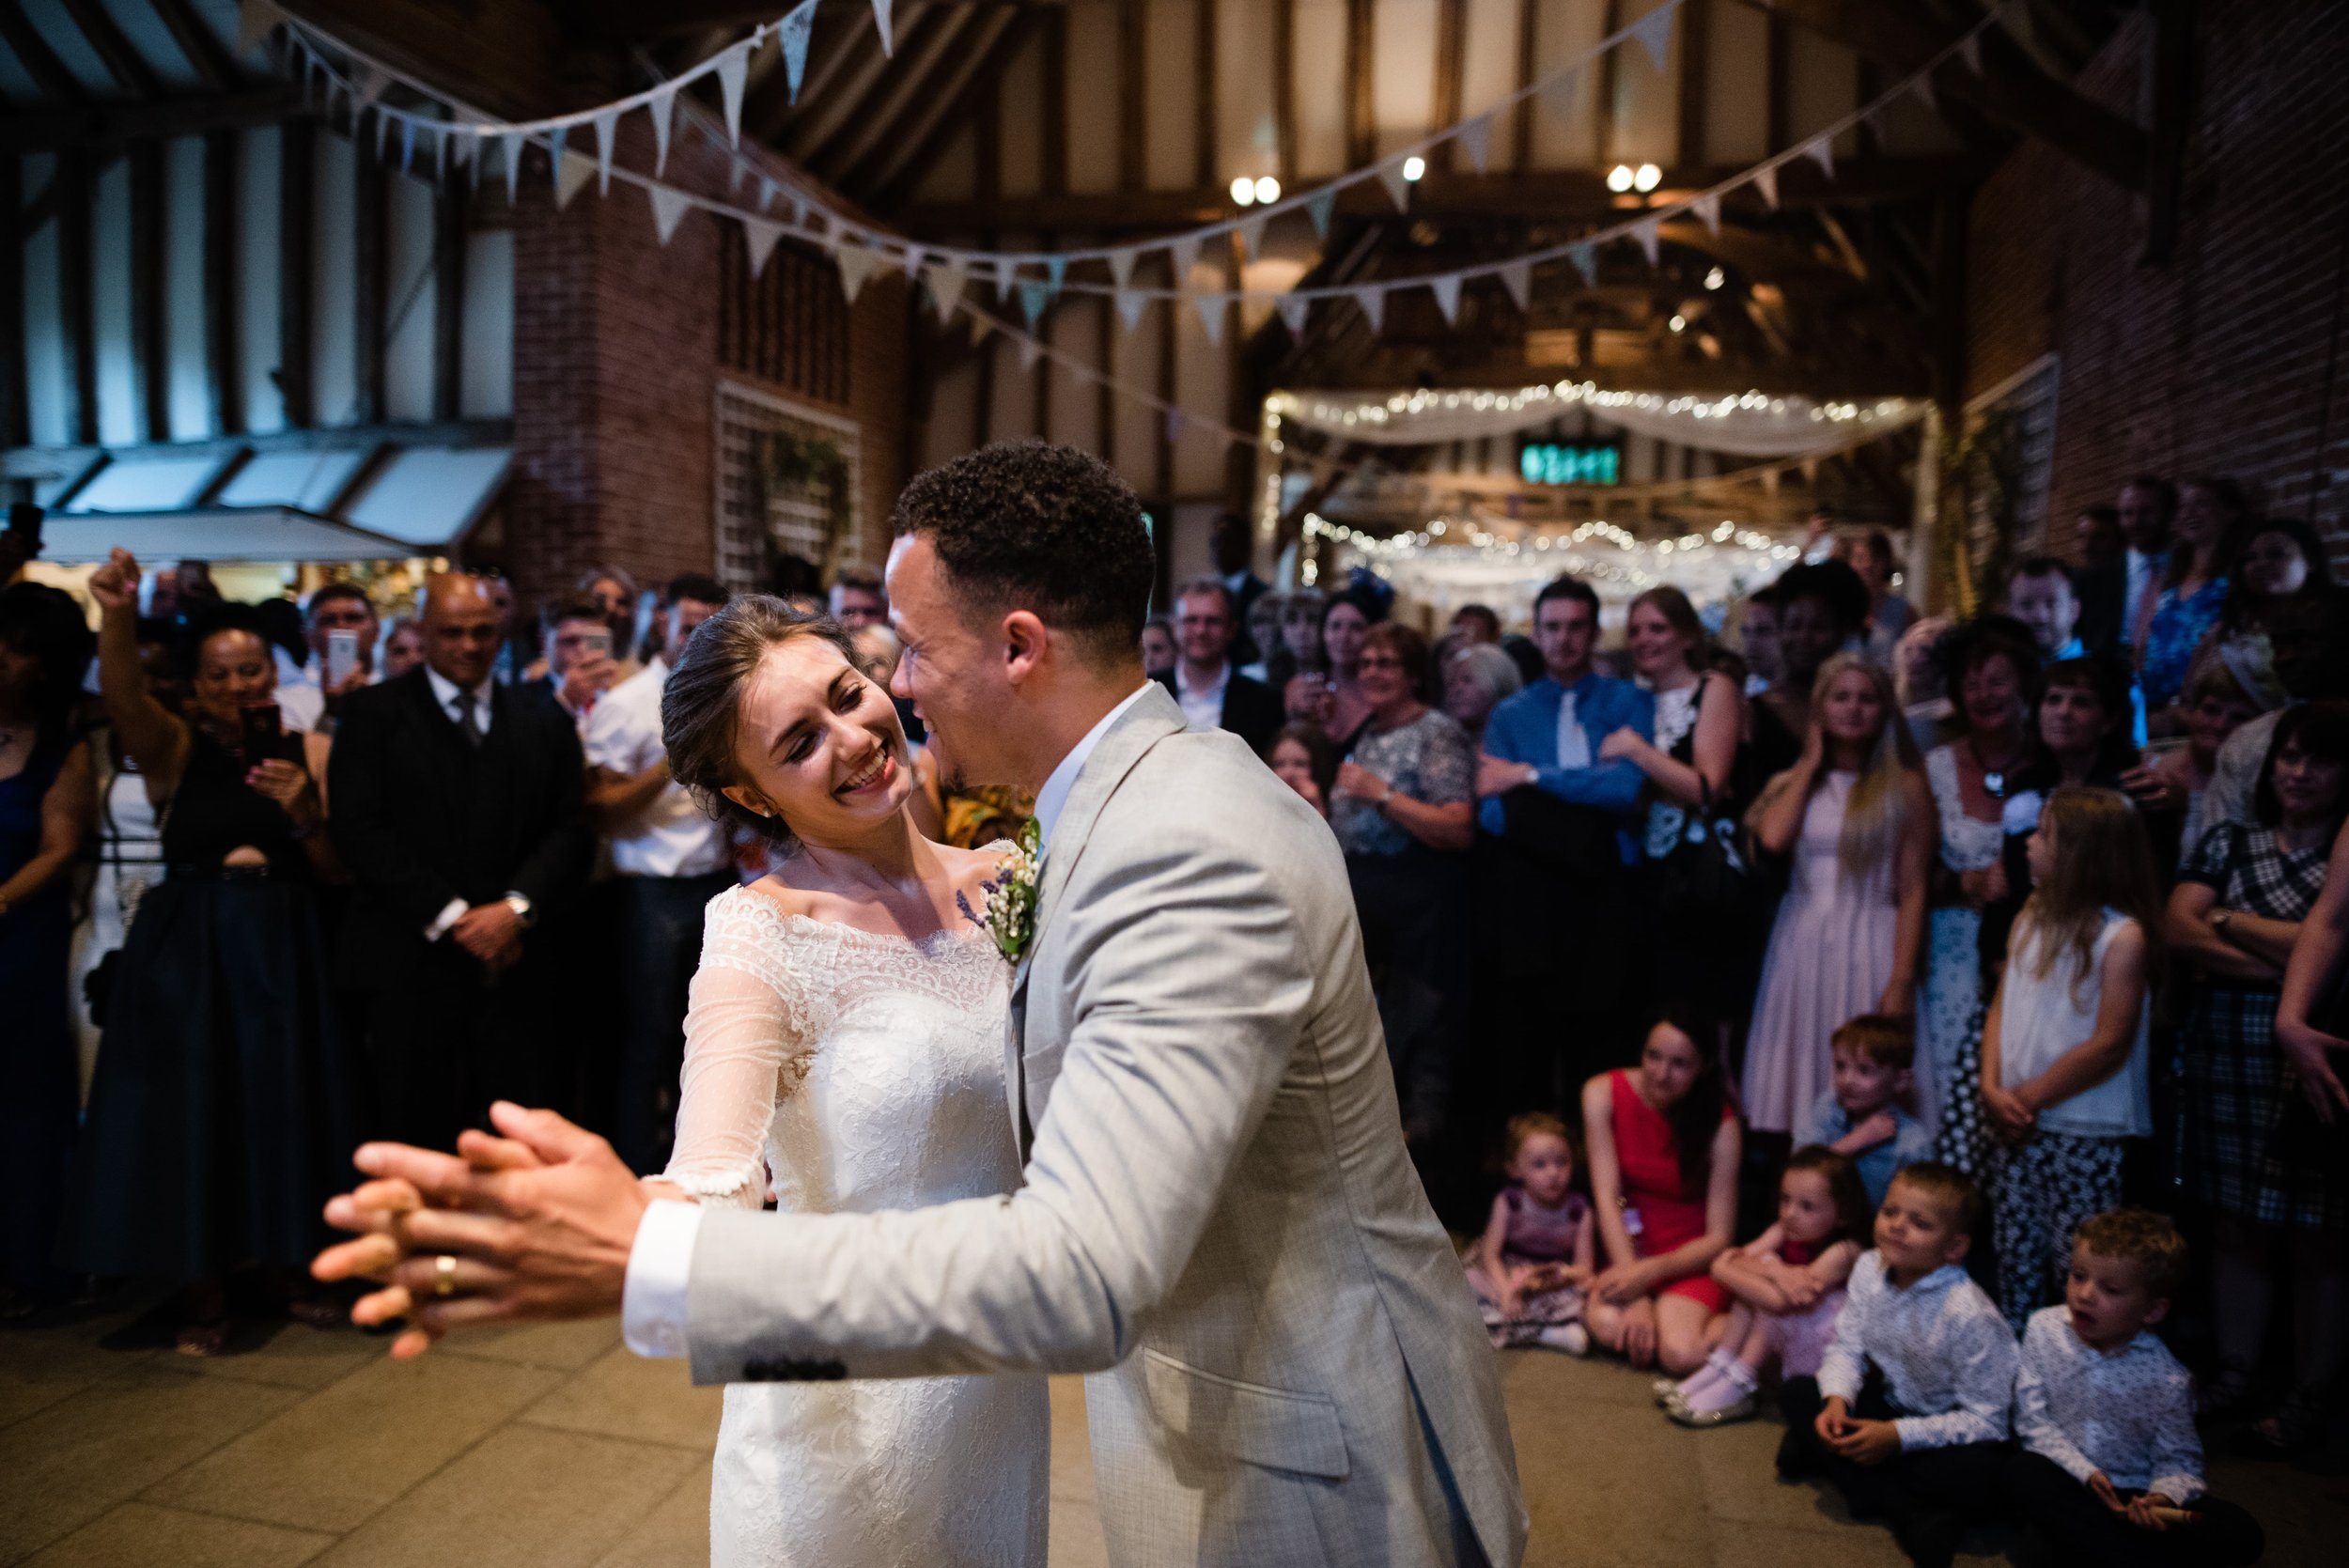 Haughley Park Barn Wedding Photography - Megan & Myles (22).jpg